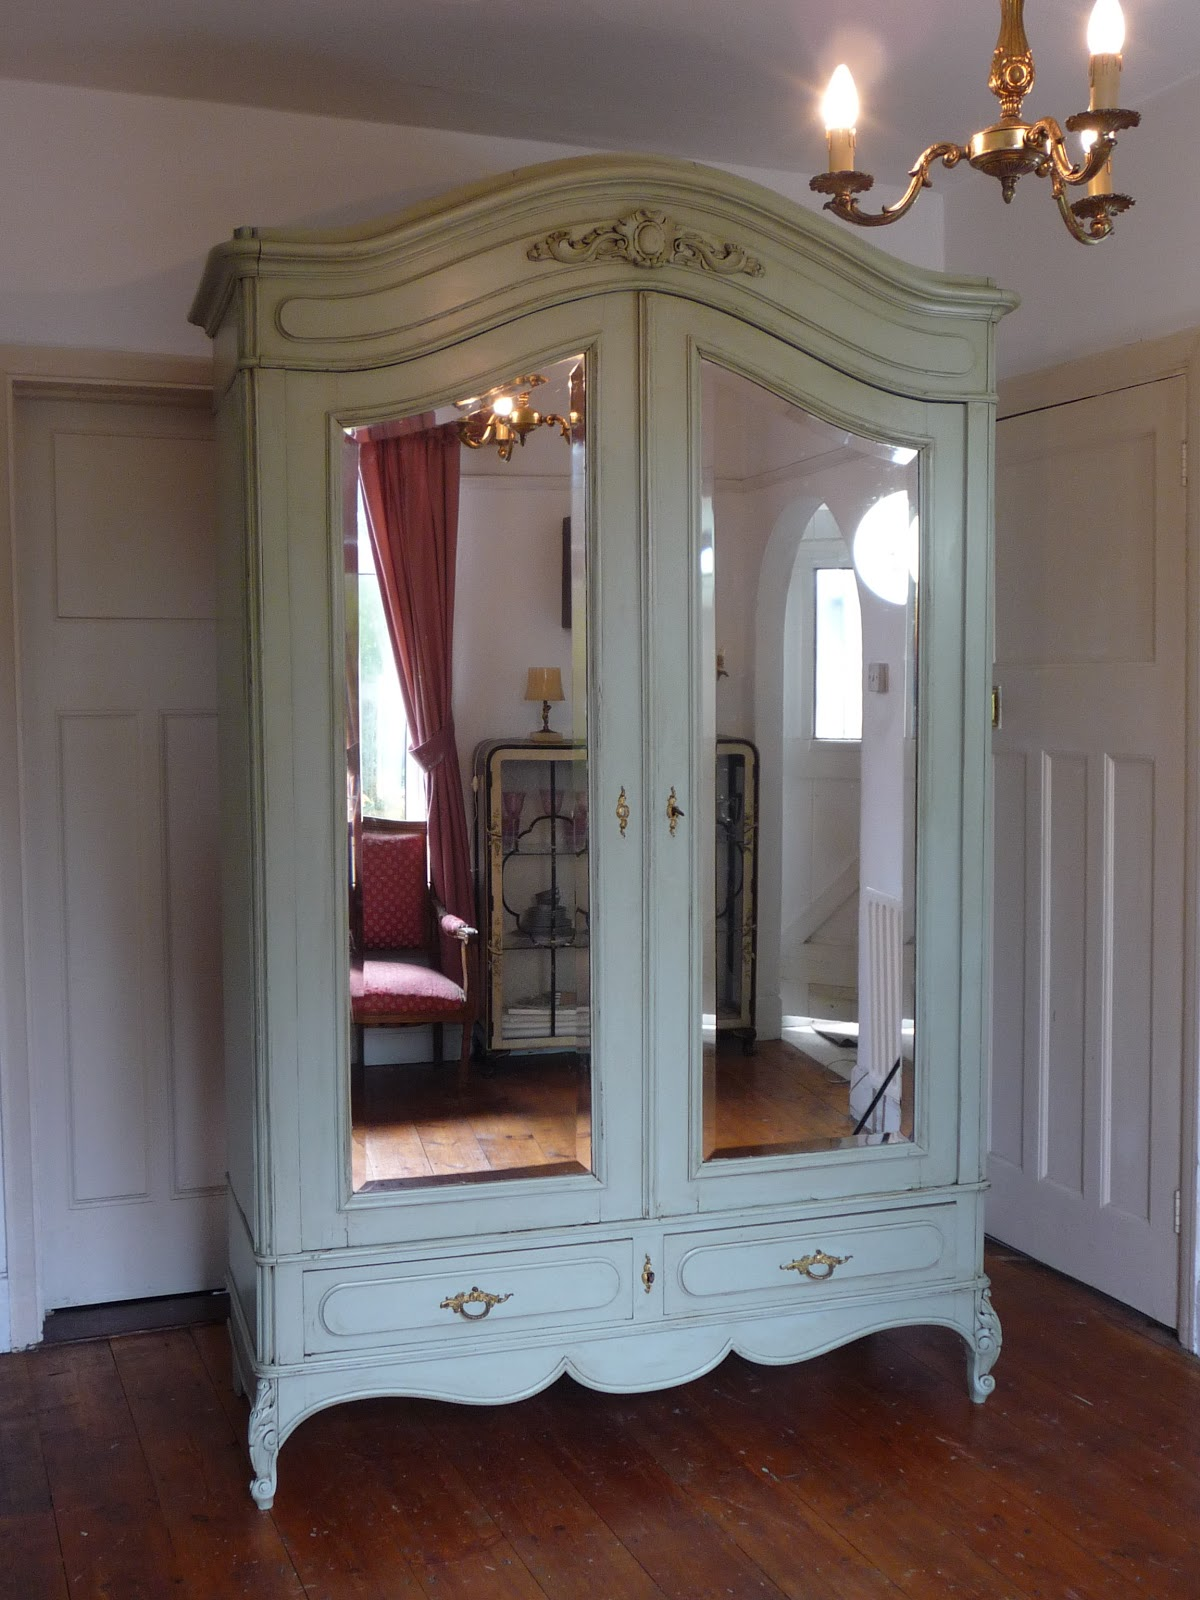 Dazzle Vintage Furniture: French Furniture - A Guide to ... on Furniture Style  id=80371